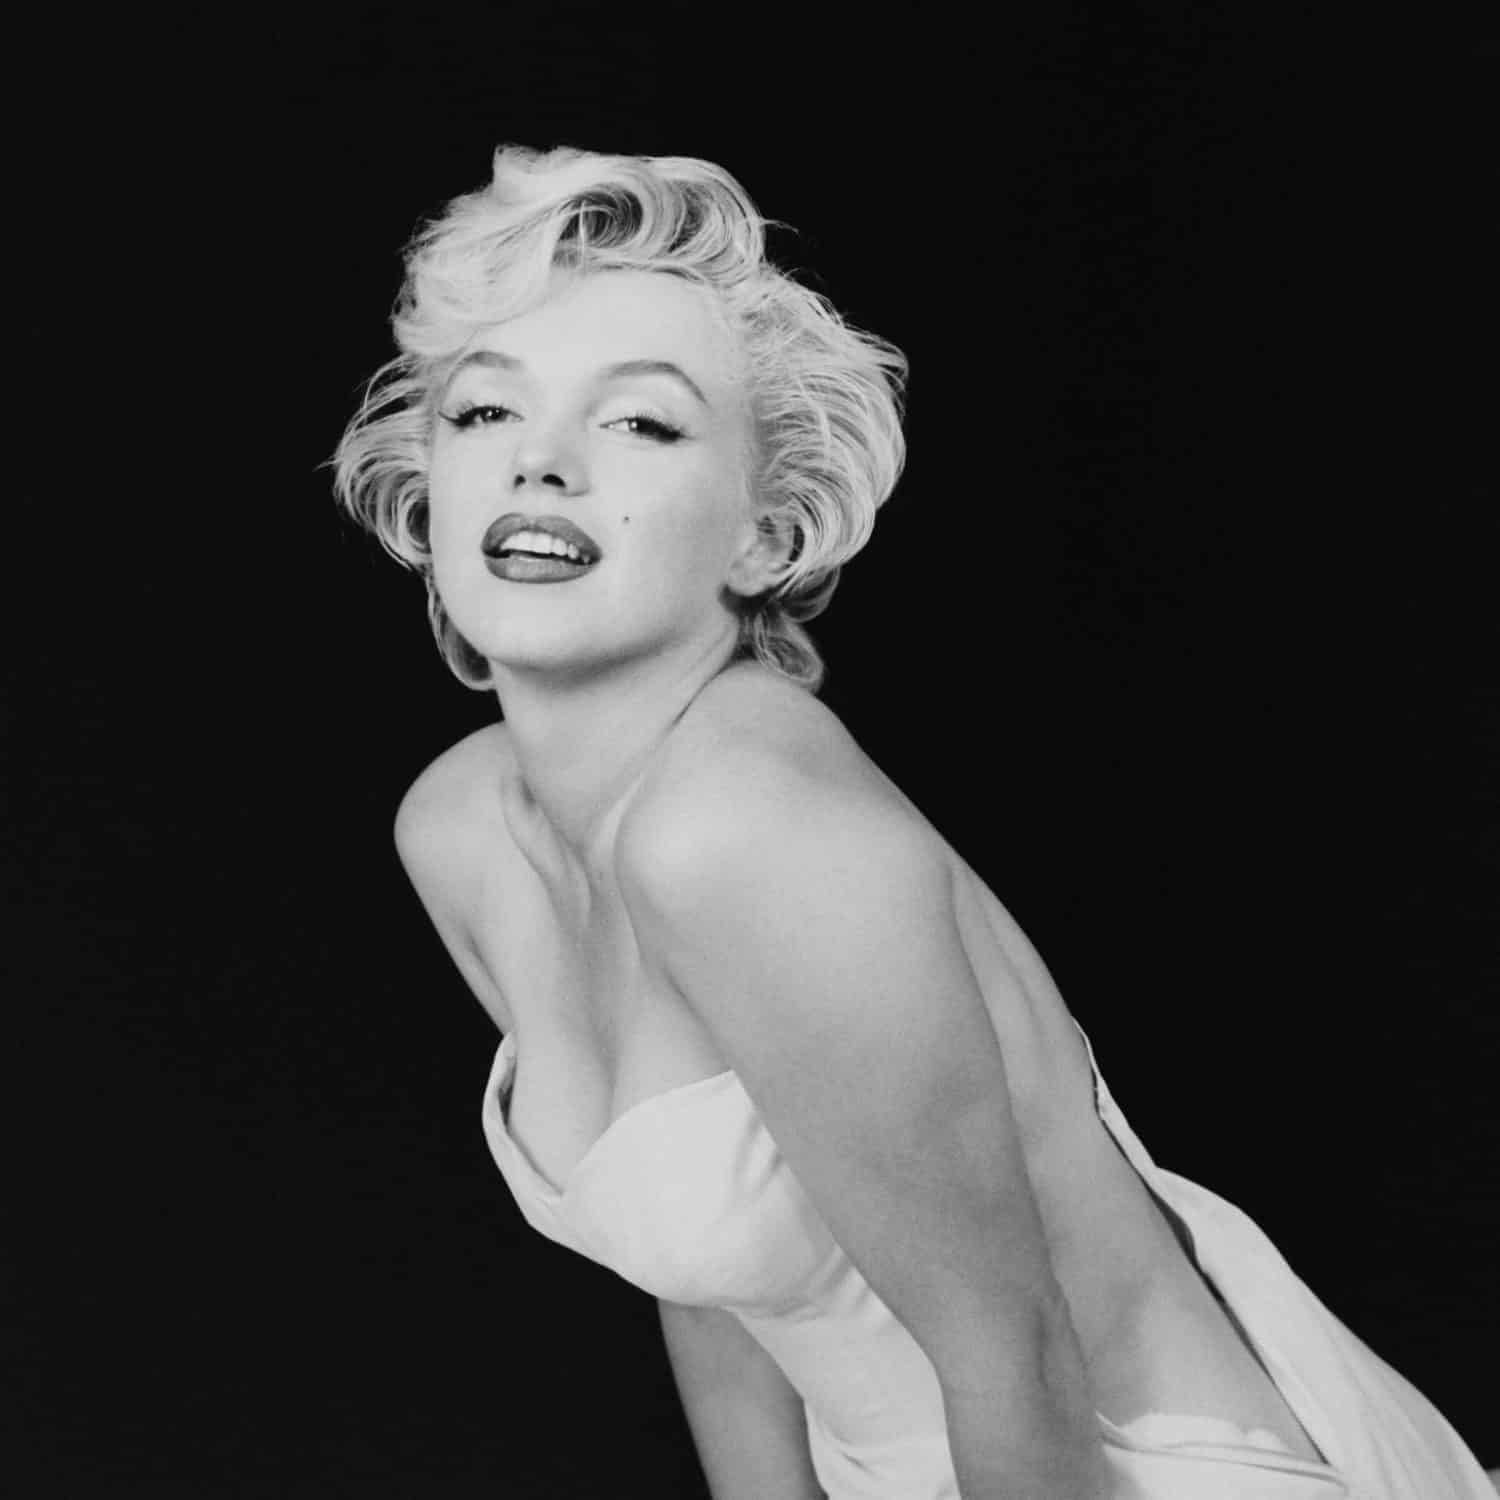 Marilyn Monroe: The Woman who made Love to the Camera